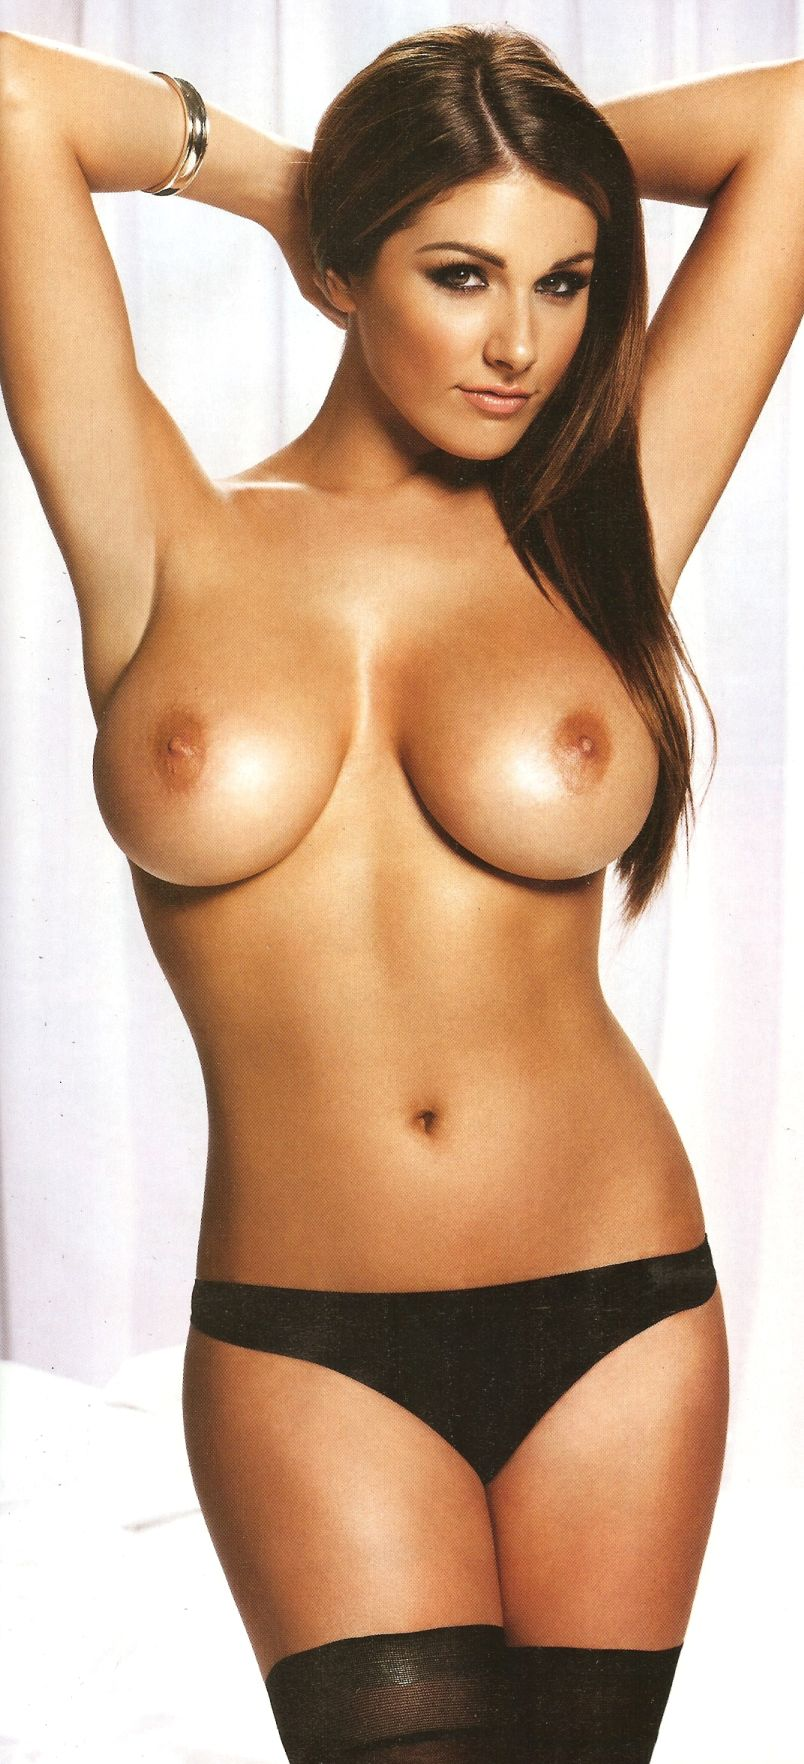 32 Sexy Pics Of Lucy Pinders Amazing, Natural 32F Breasts -1338